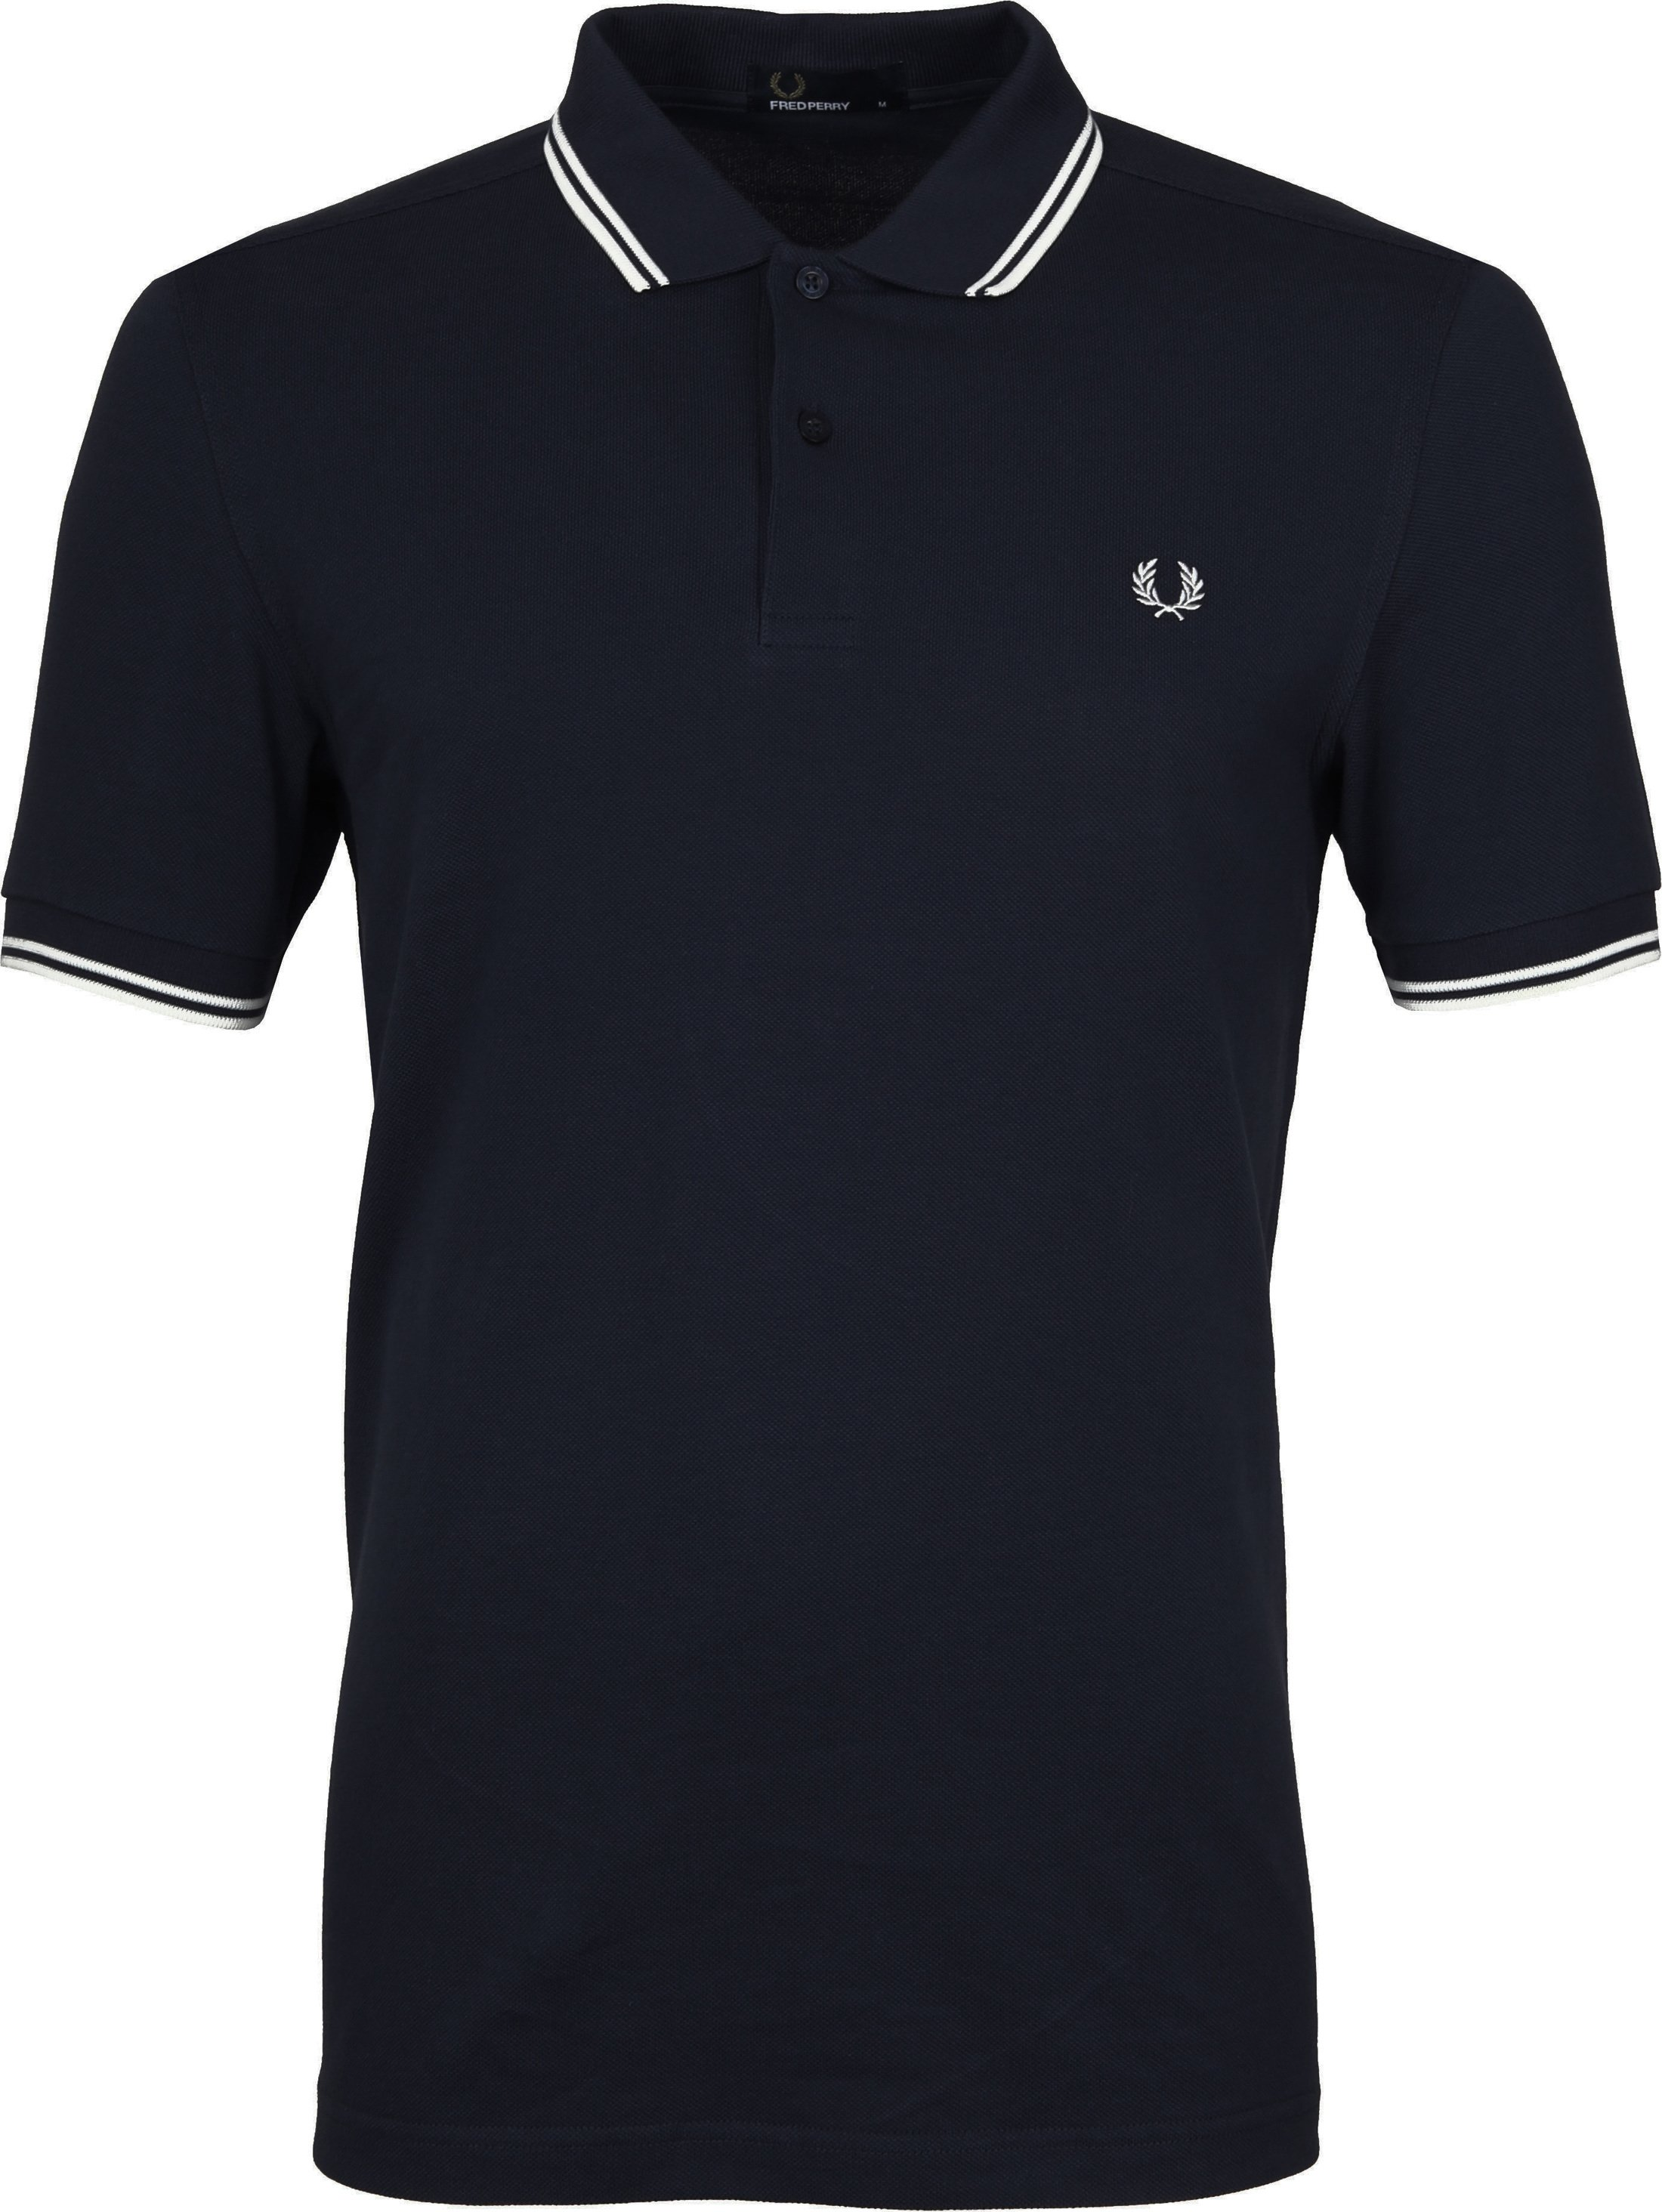 Fred Perry Polo Shirt Navy White photo 0